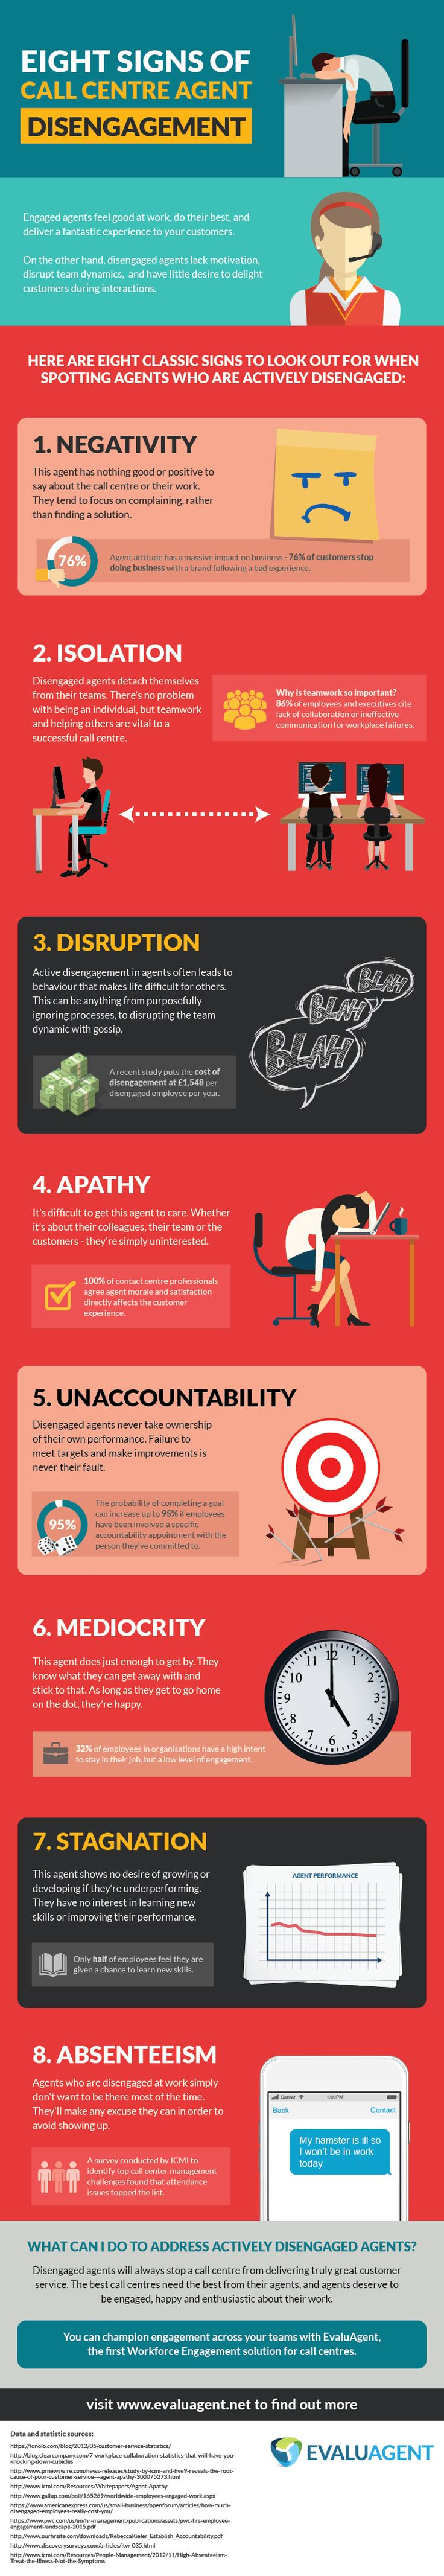 Eight Signs of Call Centre Agent Disengagement Infographic  Check out the infographic from EvaluAgent on how to spot the signs of agent disengagement.  EvaluAgent provides call centre quality monitoring software designed to help enhance agent performance in contact centres through employee engagement.